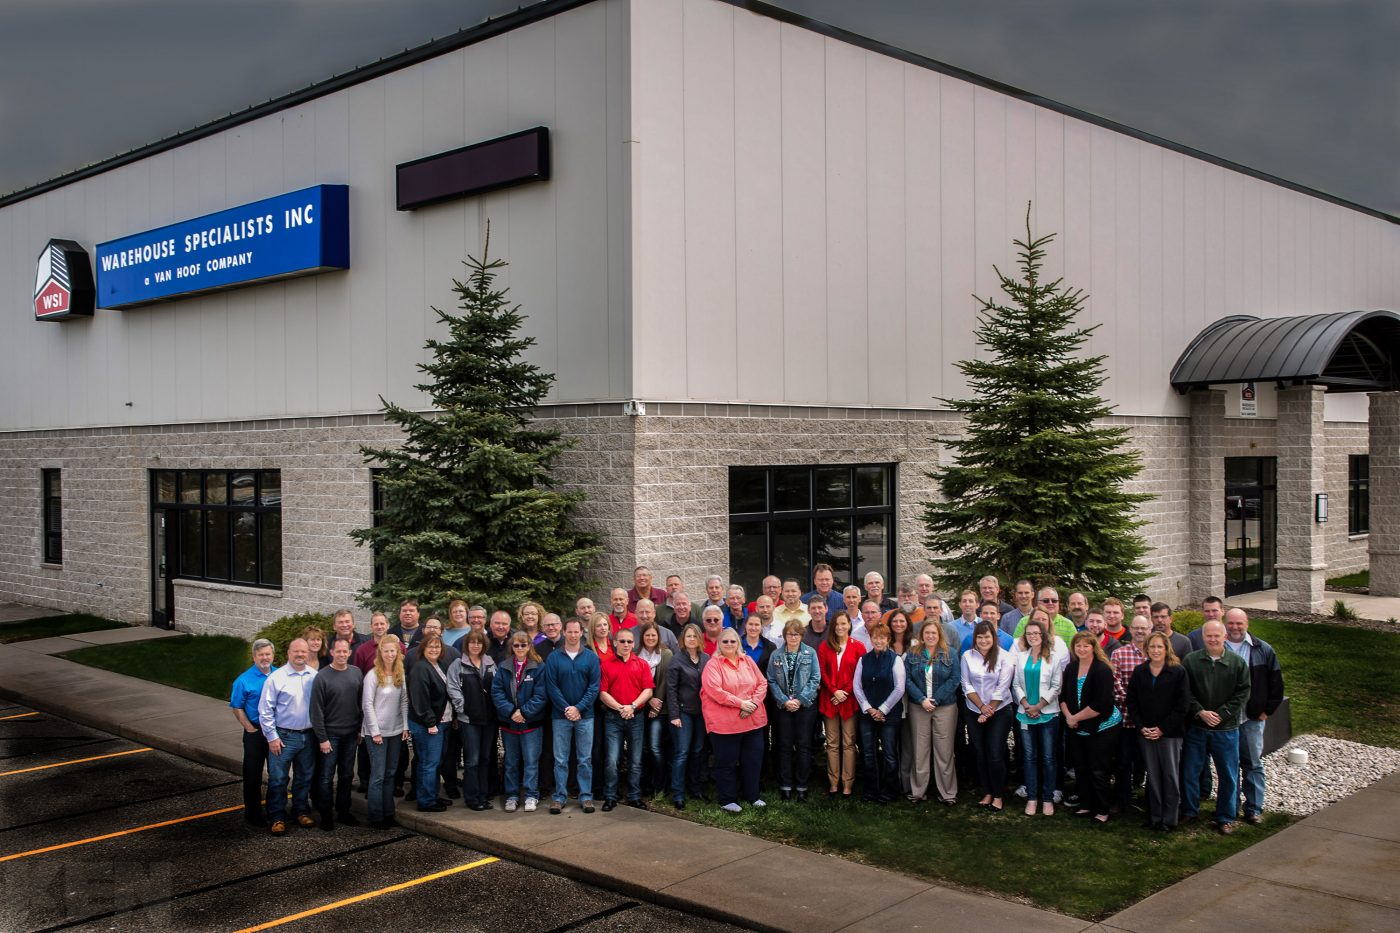 Large group portrait of the Warehouse Specialists Inc employees, at their warehouse in Appleton, Wisconsin.